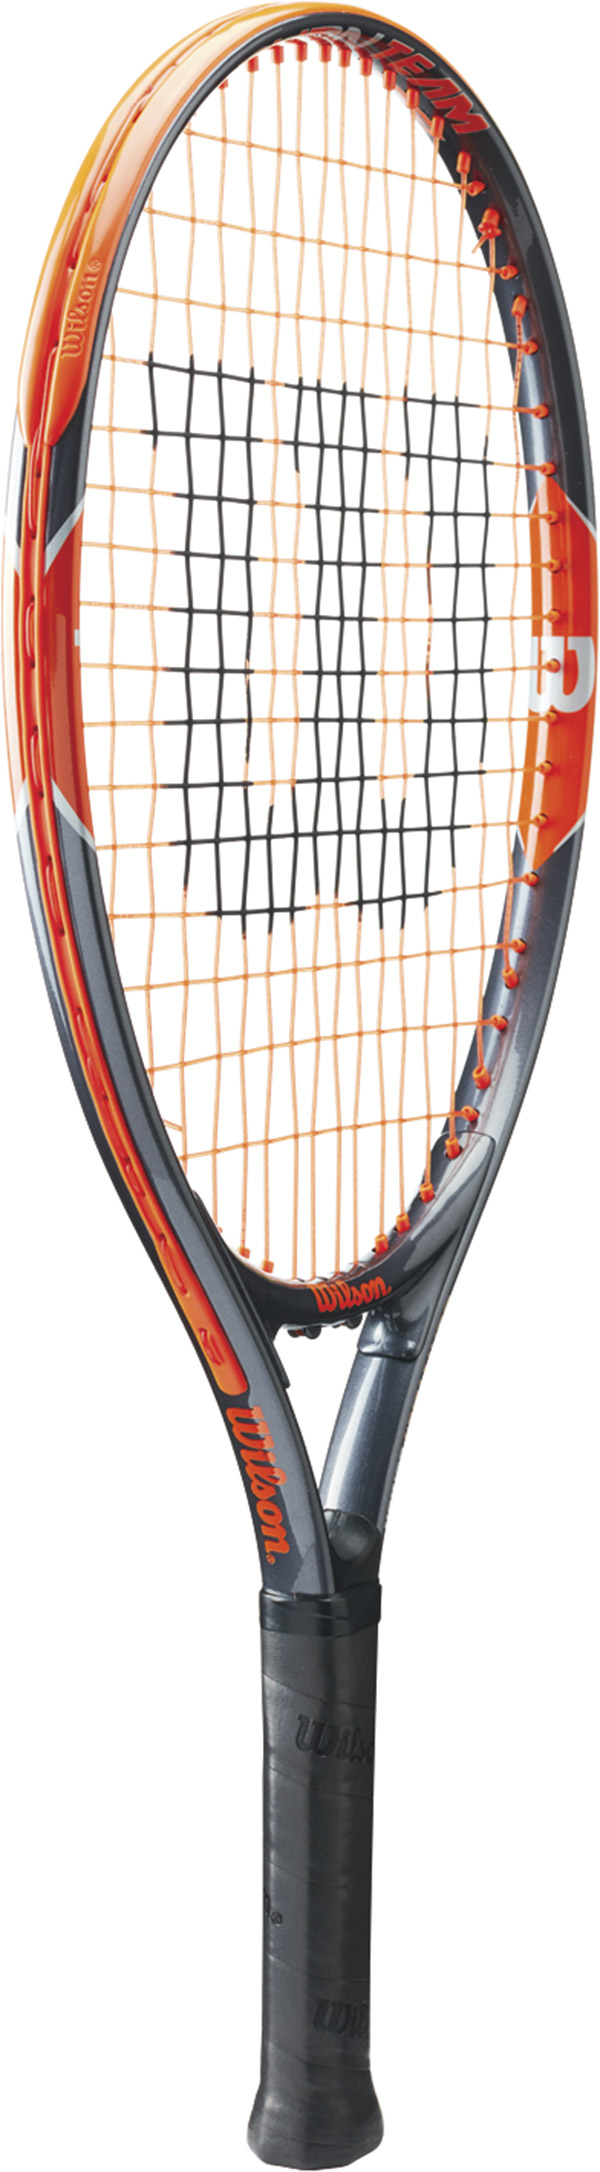 Wilson Burn Team 21 Junior Strung - Mcjrb4 - Tennis Racquets Junior Tennis Racquets Wilson MCJRB4